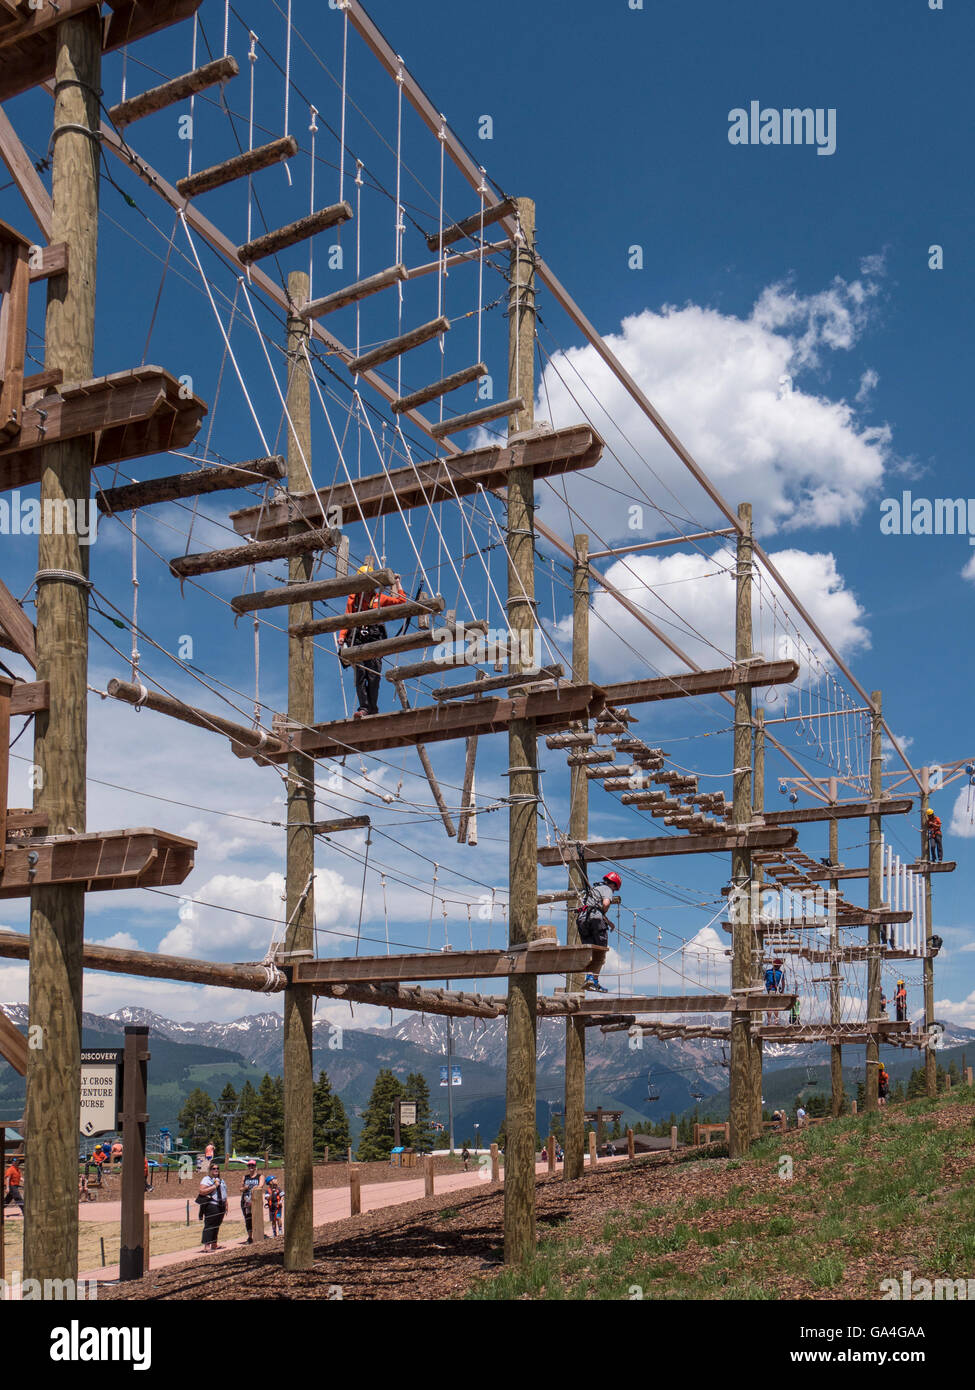 Holy Cross Adventure Course, Epic Discovery center at Eagle's Nest, Vail Ski Resort, Vail, Colorado. - Stock Image